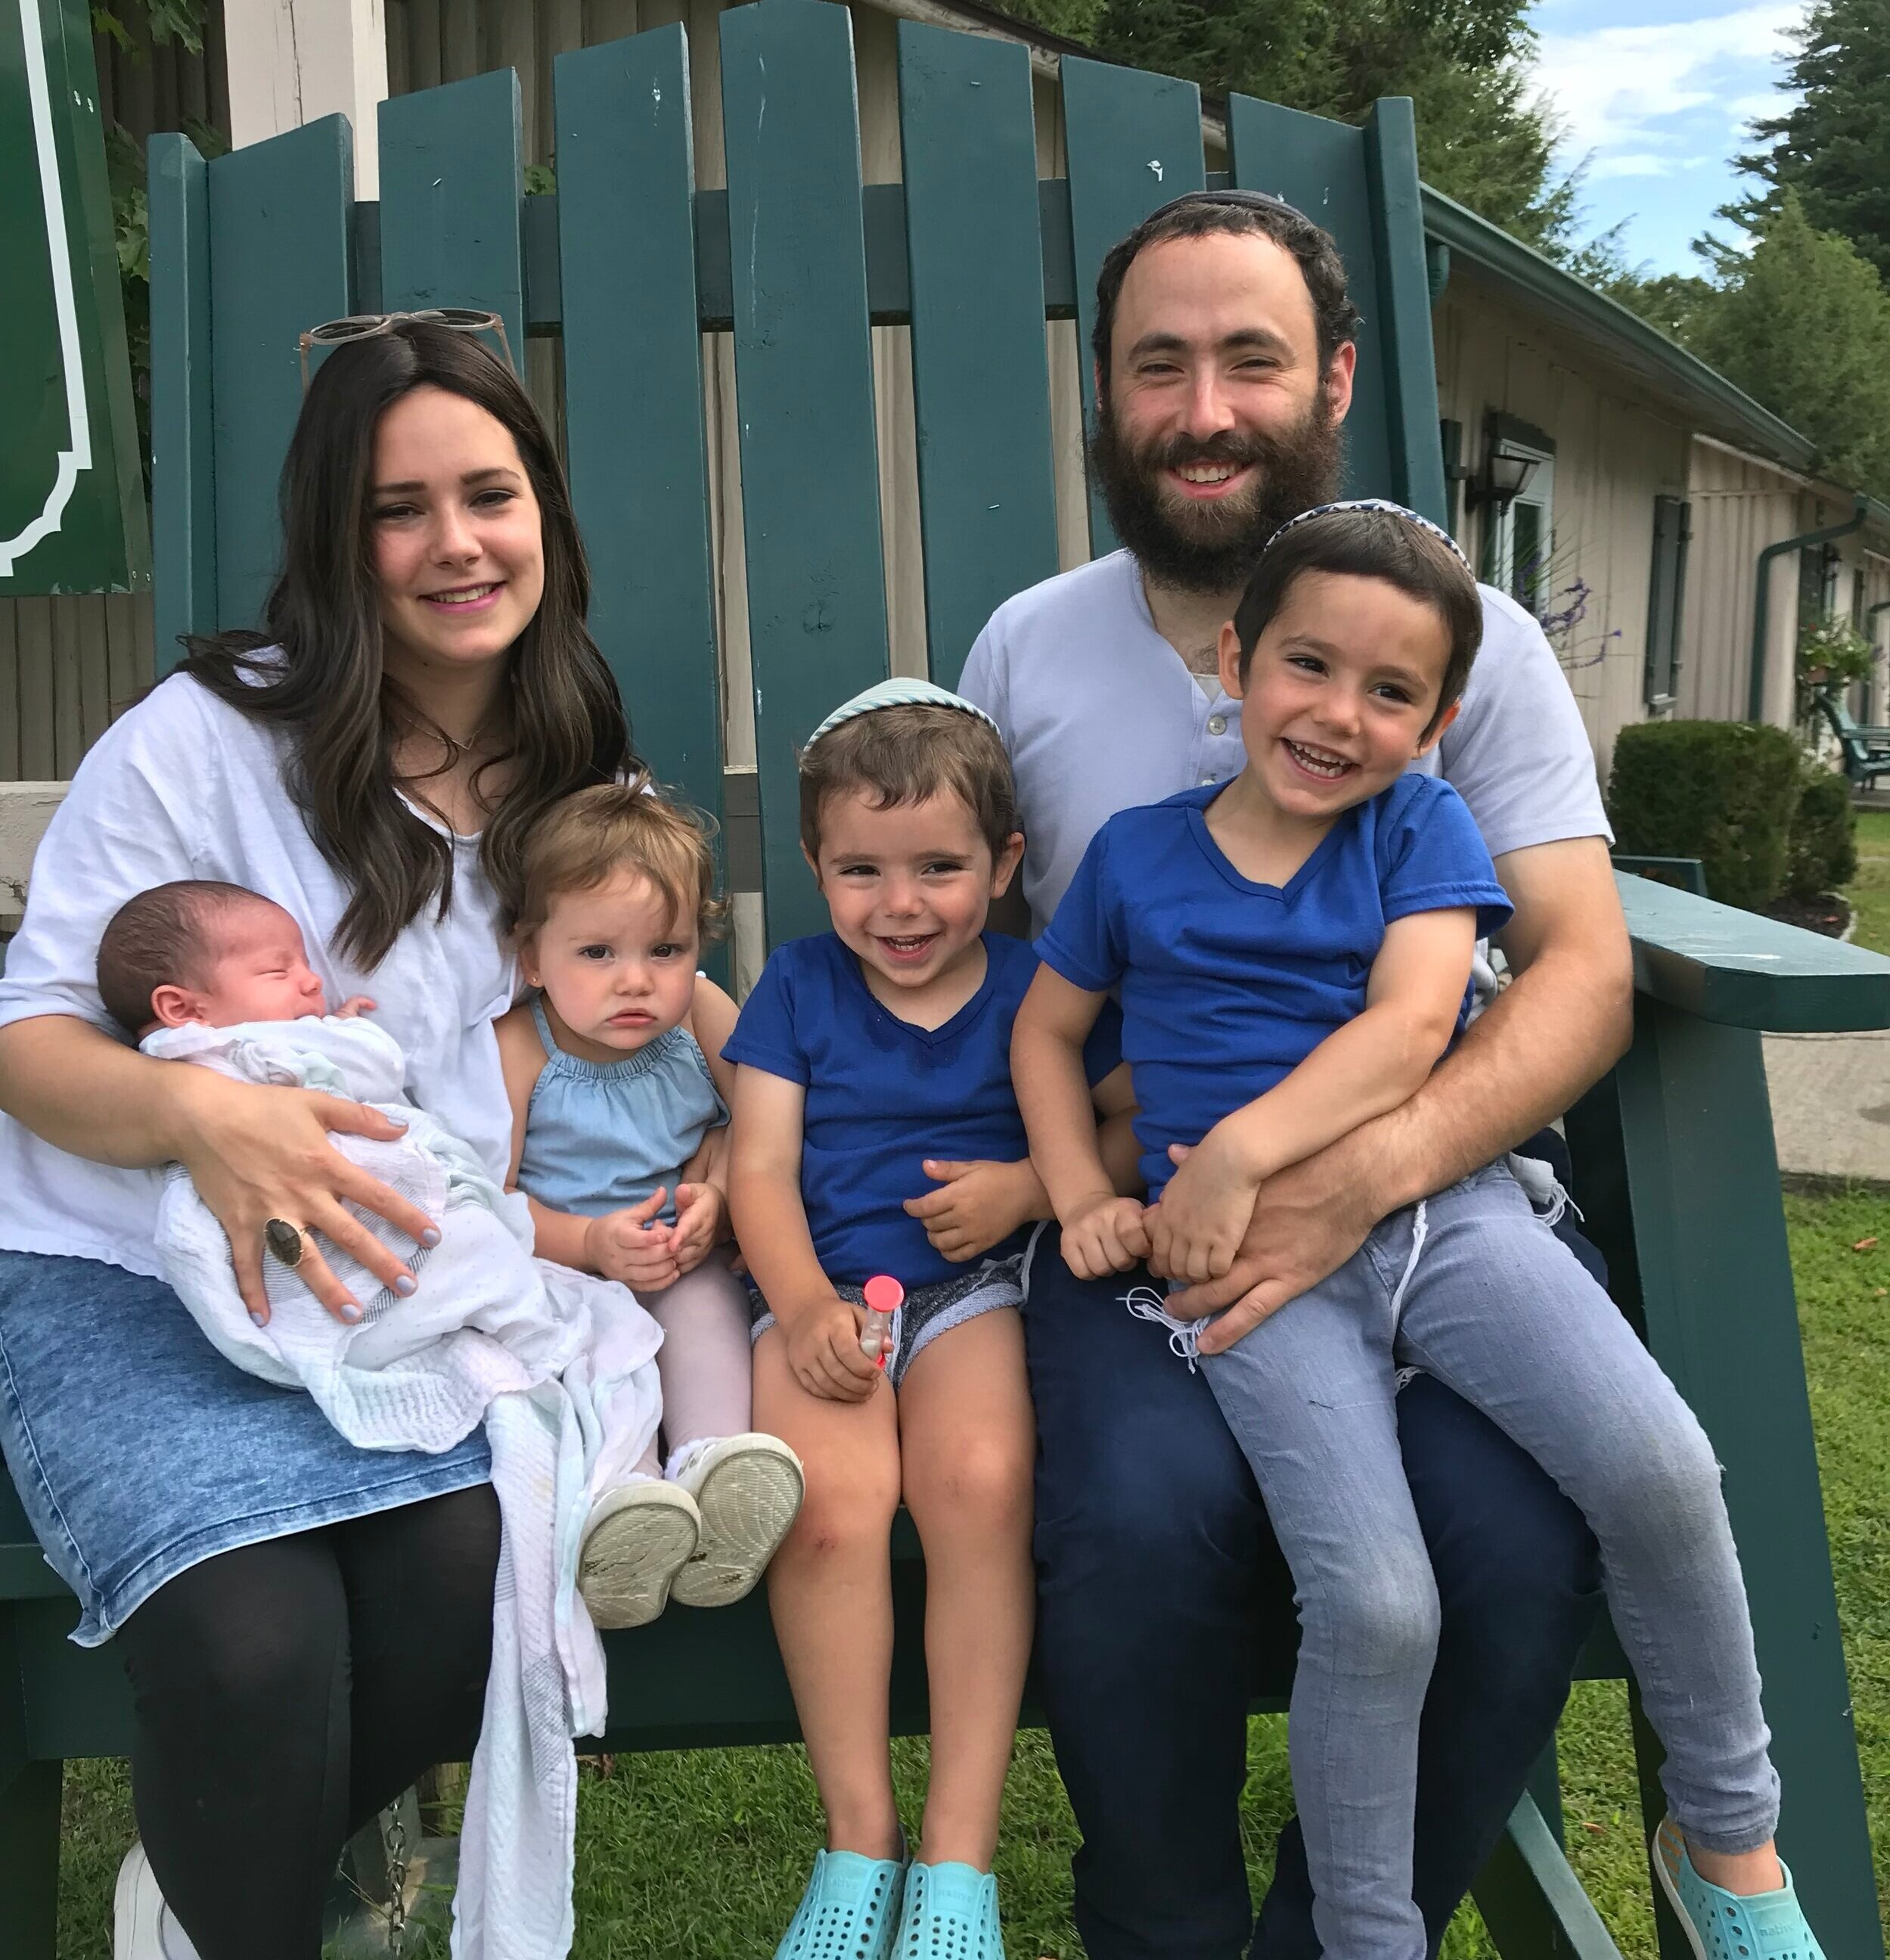 """Mendel Stiefel has been co-directing Camp Gan Israel since 2014. In summer of 2017 his wife Chana Stiefel joined as co-director. Growing up, Mendel attended Gan Israel both as a camper and counselor in many different countries including a resident camp in Ukraine for impoverished children. During the off season, he acts as youth director at the Chabad of Northwest NJ, doing holiday and Shabbat programs, teen programming, as well as directing an exciting winter camp. He also teaches part time at the Gottesman RTW Academy. Chana Stiefel grew up in Rockaway New Jersey. During the off season she acts as the assistant director of the Chabad Early Learning Center in Rockaway NJ. Last summer, due to the growth of the camp, Chana joined as co-director of CGI. They live together with their 3 children in White Meadow Lake, NJ. """"We see it as a great opportunity to be involved in making memorable summers for our community children that are sure to last a lifetime!"""